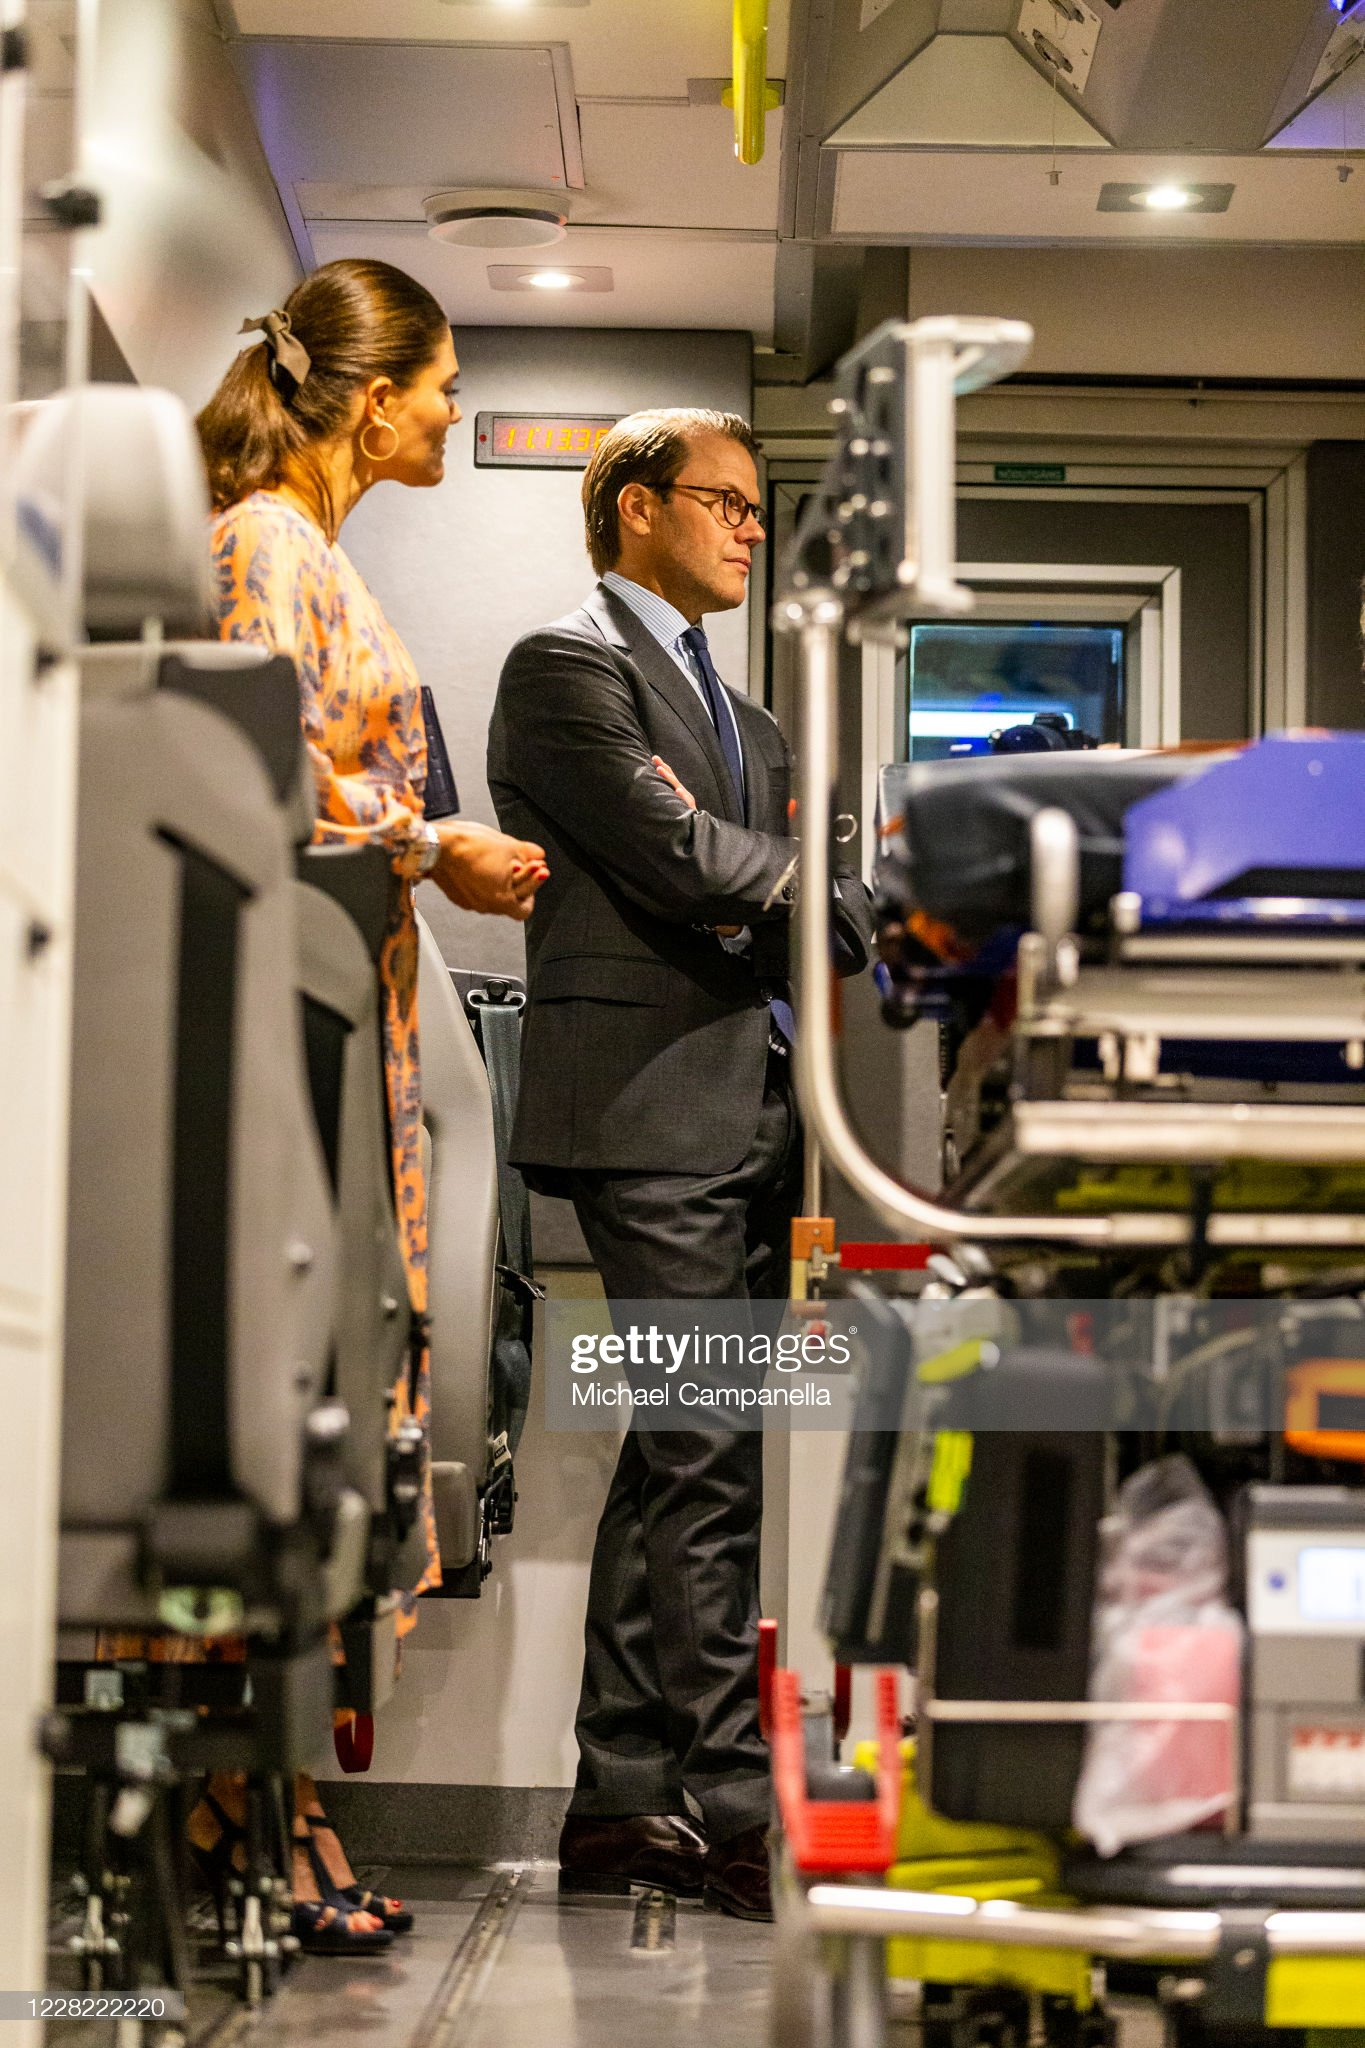 crown-princess-victoria-and-prince-daniel-of-sweden-visit-an-station-picture-id1228222220